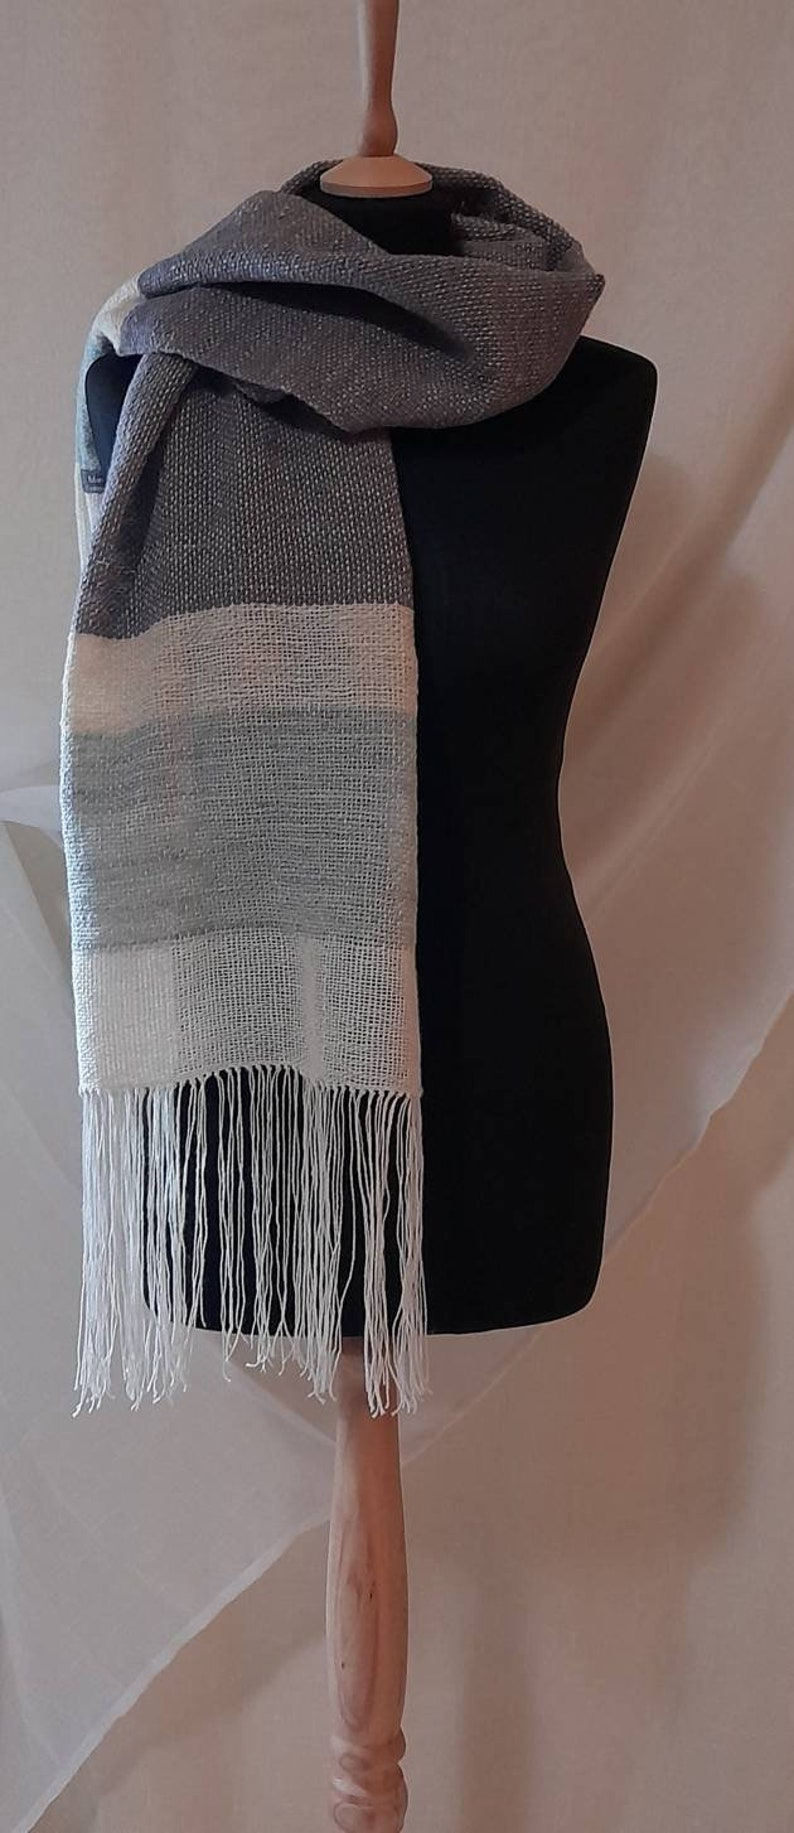 Cashmere scarf and wool from our farm In organic certification